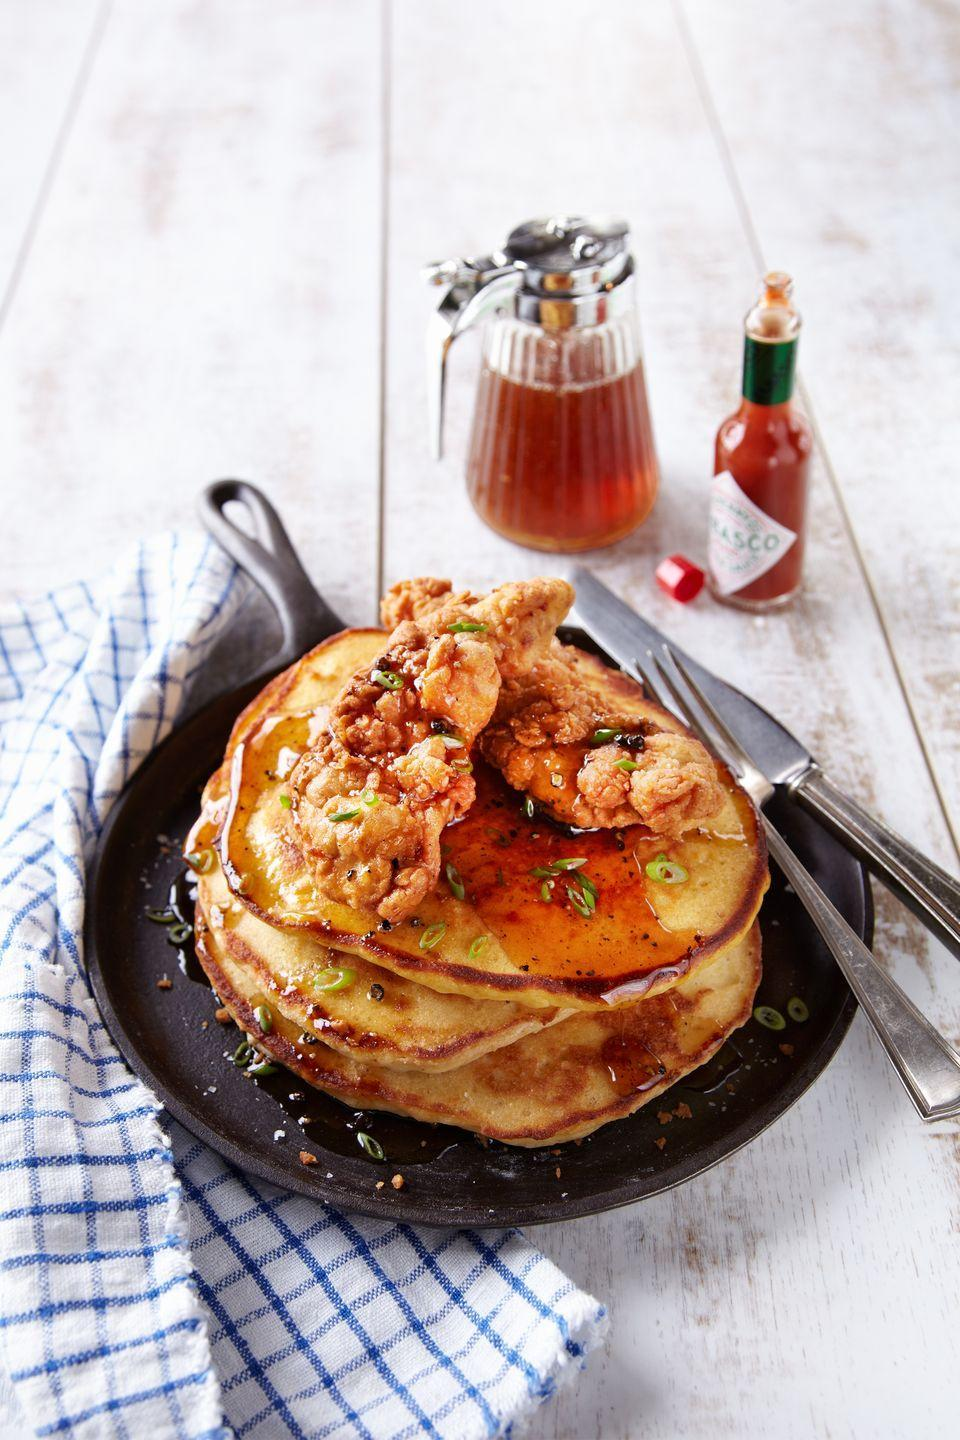 """<p>What dad wouldn't want to wake up to a stack of chicken and cornbread pancakes?! </p><p><strong><a href=""""https://www.countryliving.com/food-drinks/recipes/a37593/chicken-corn-bread-pancakes-spicy-syrup/"""" rel=""""nofollow noopener"""" target=""""_blank"""" data-ylk=""""slk:Get the recipe"""" class=""""link rapid-noclick-resp"""">Get the recipe</a>.</strong> </p>"""